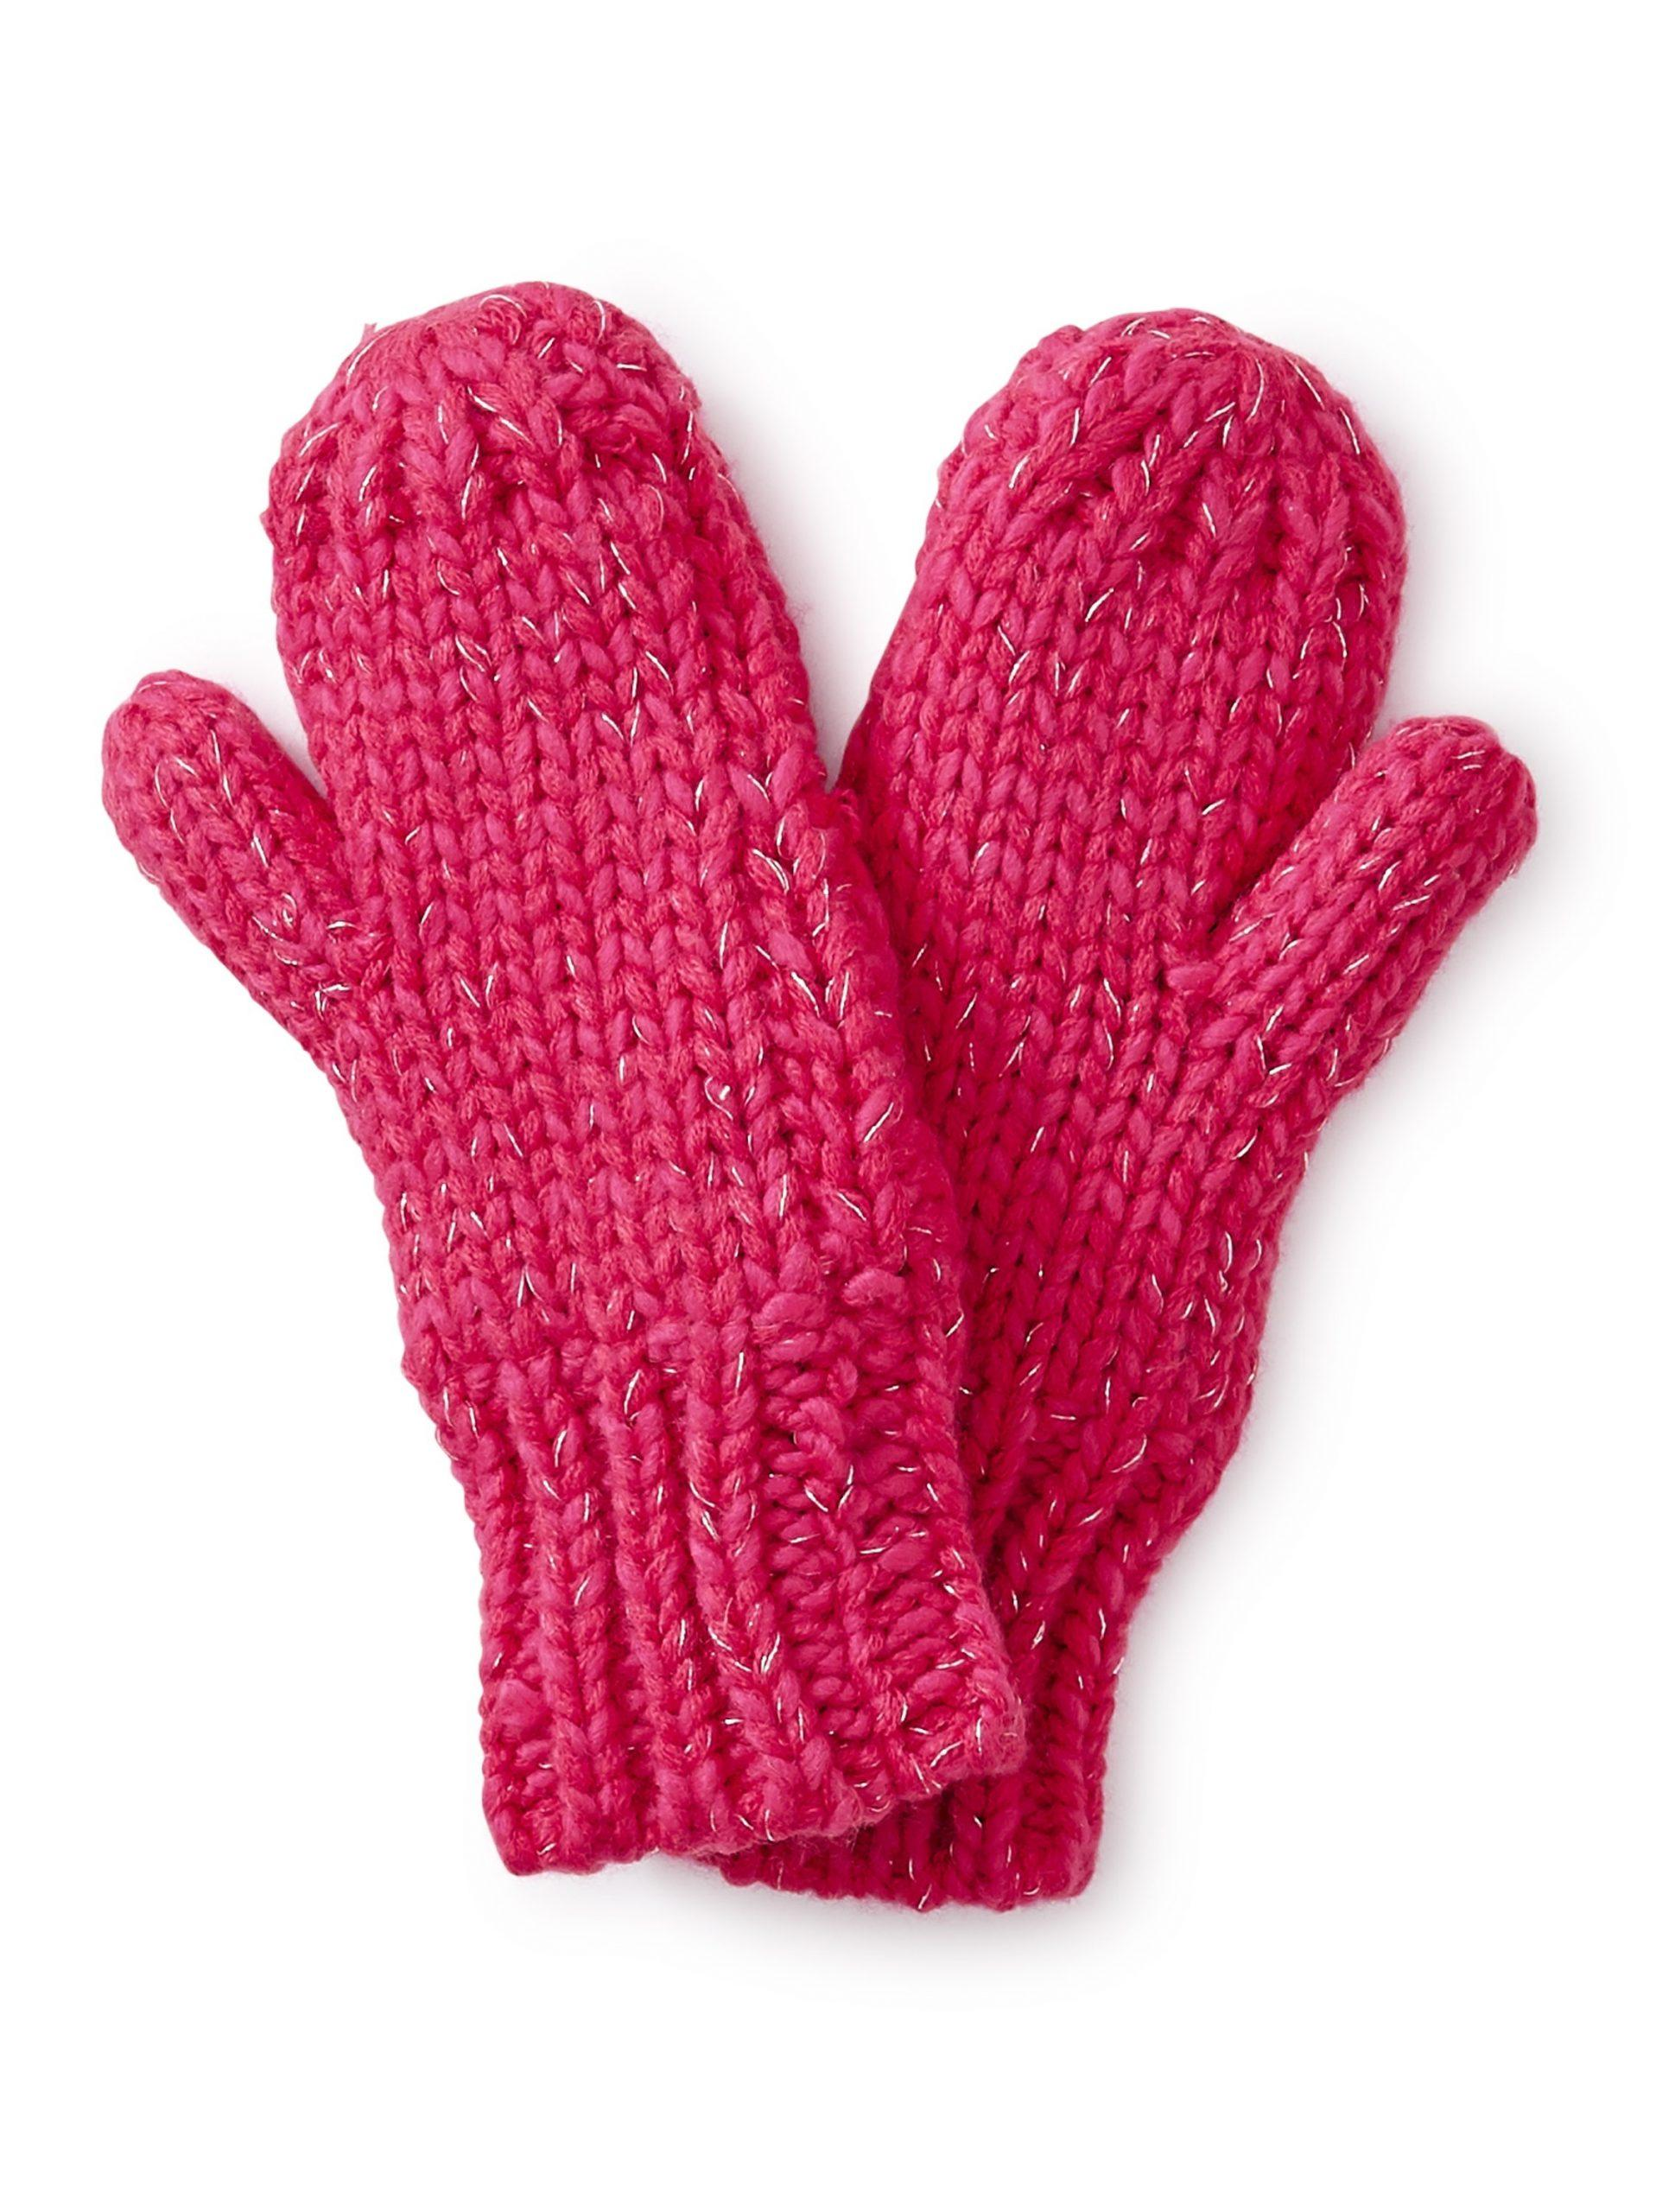 Appaman Cable Mittens, $25 @teacollection.com